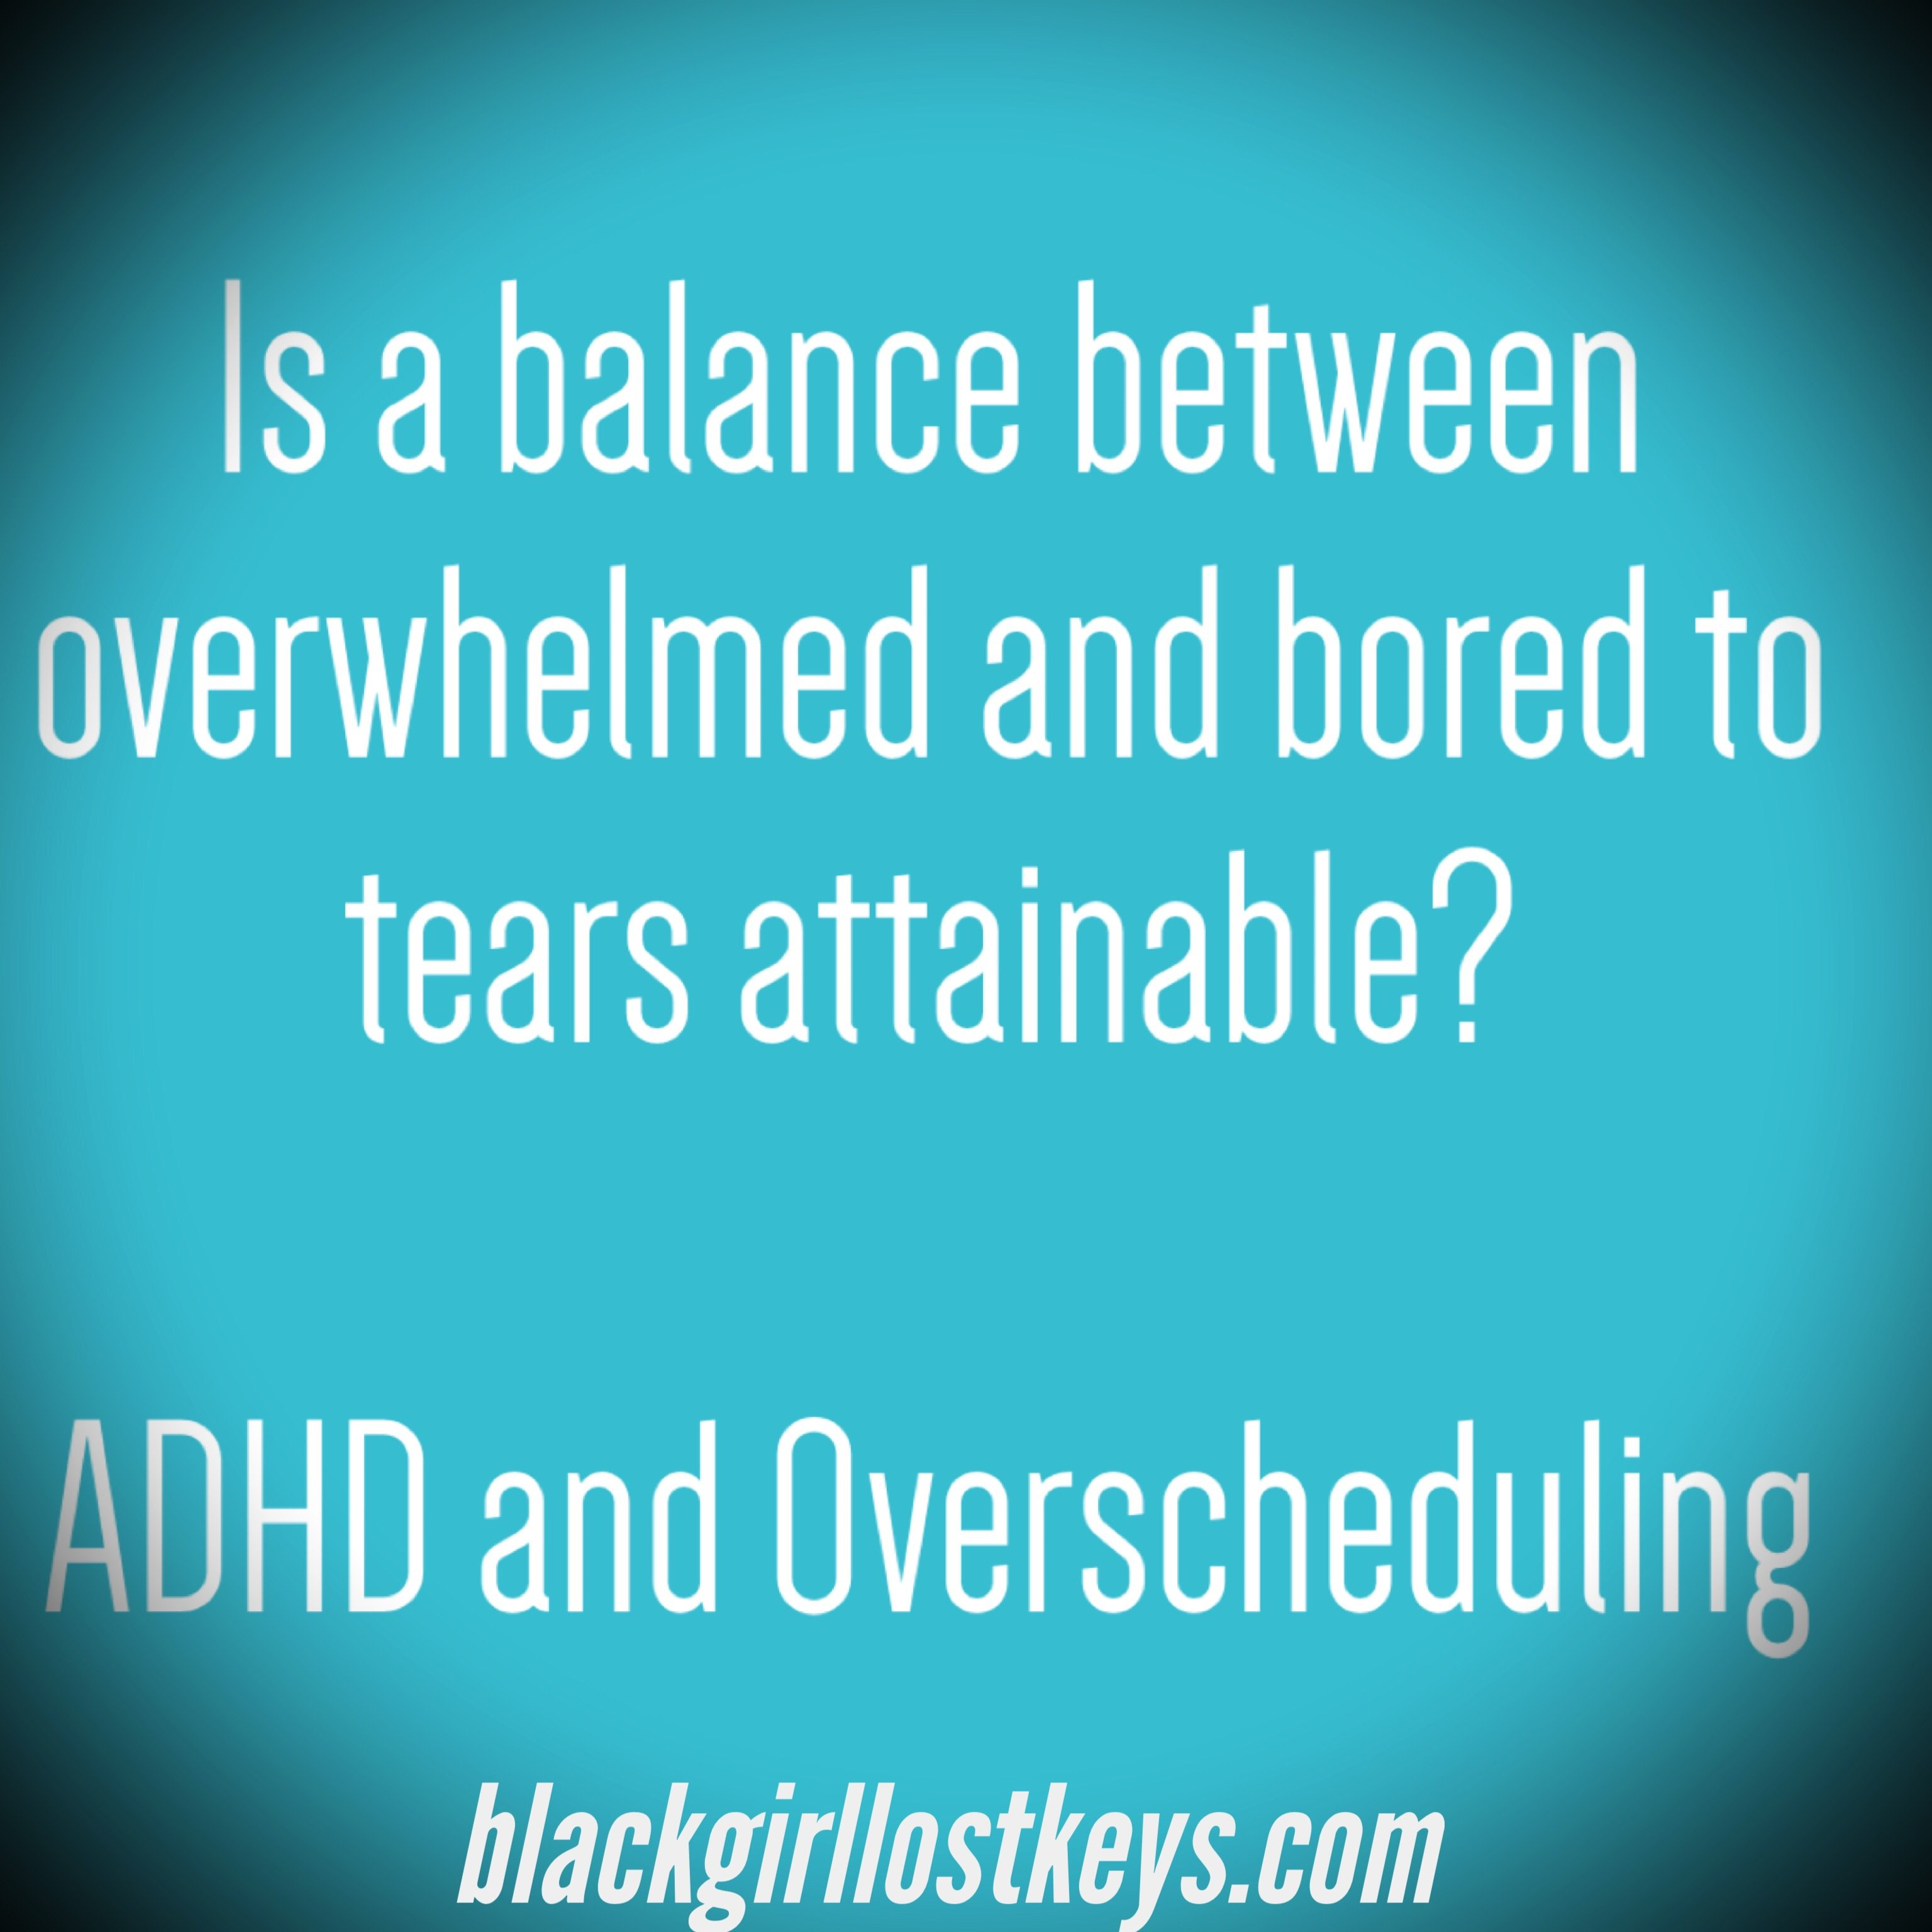 ADHD and Scheduling